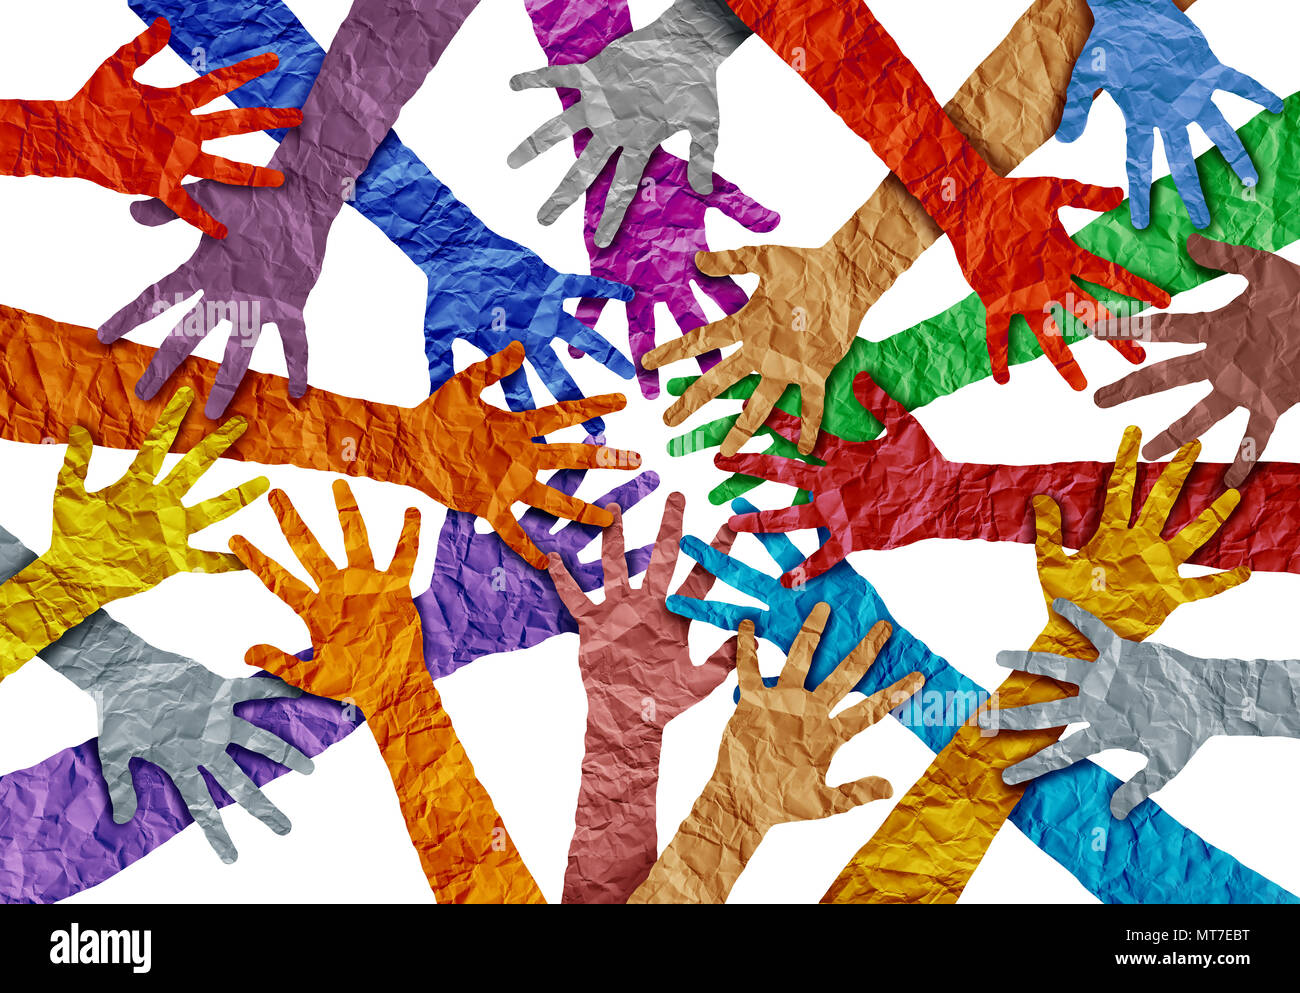 Concept of diversity and crowd cooperation symbol as diverse hands holding together in a 3D illustration style. - Stock Image